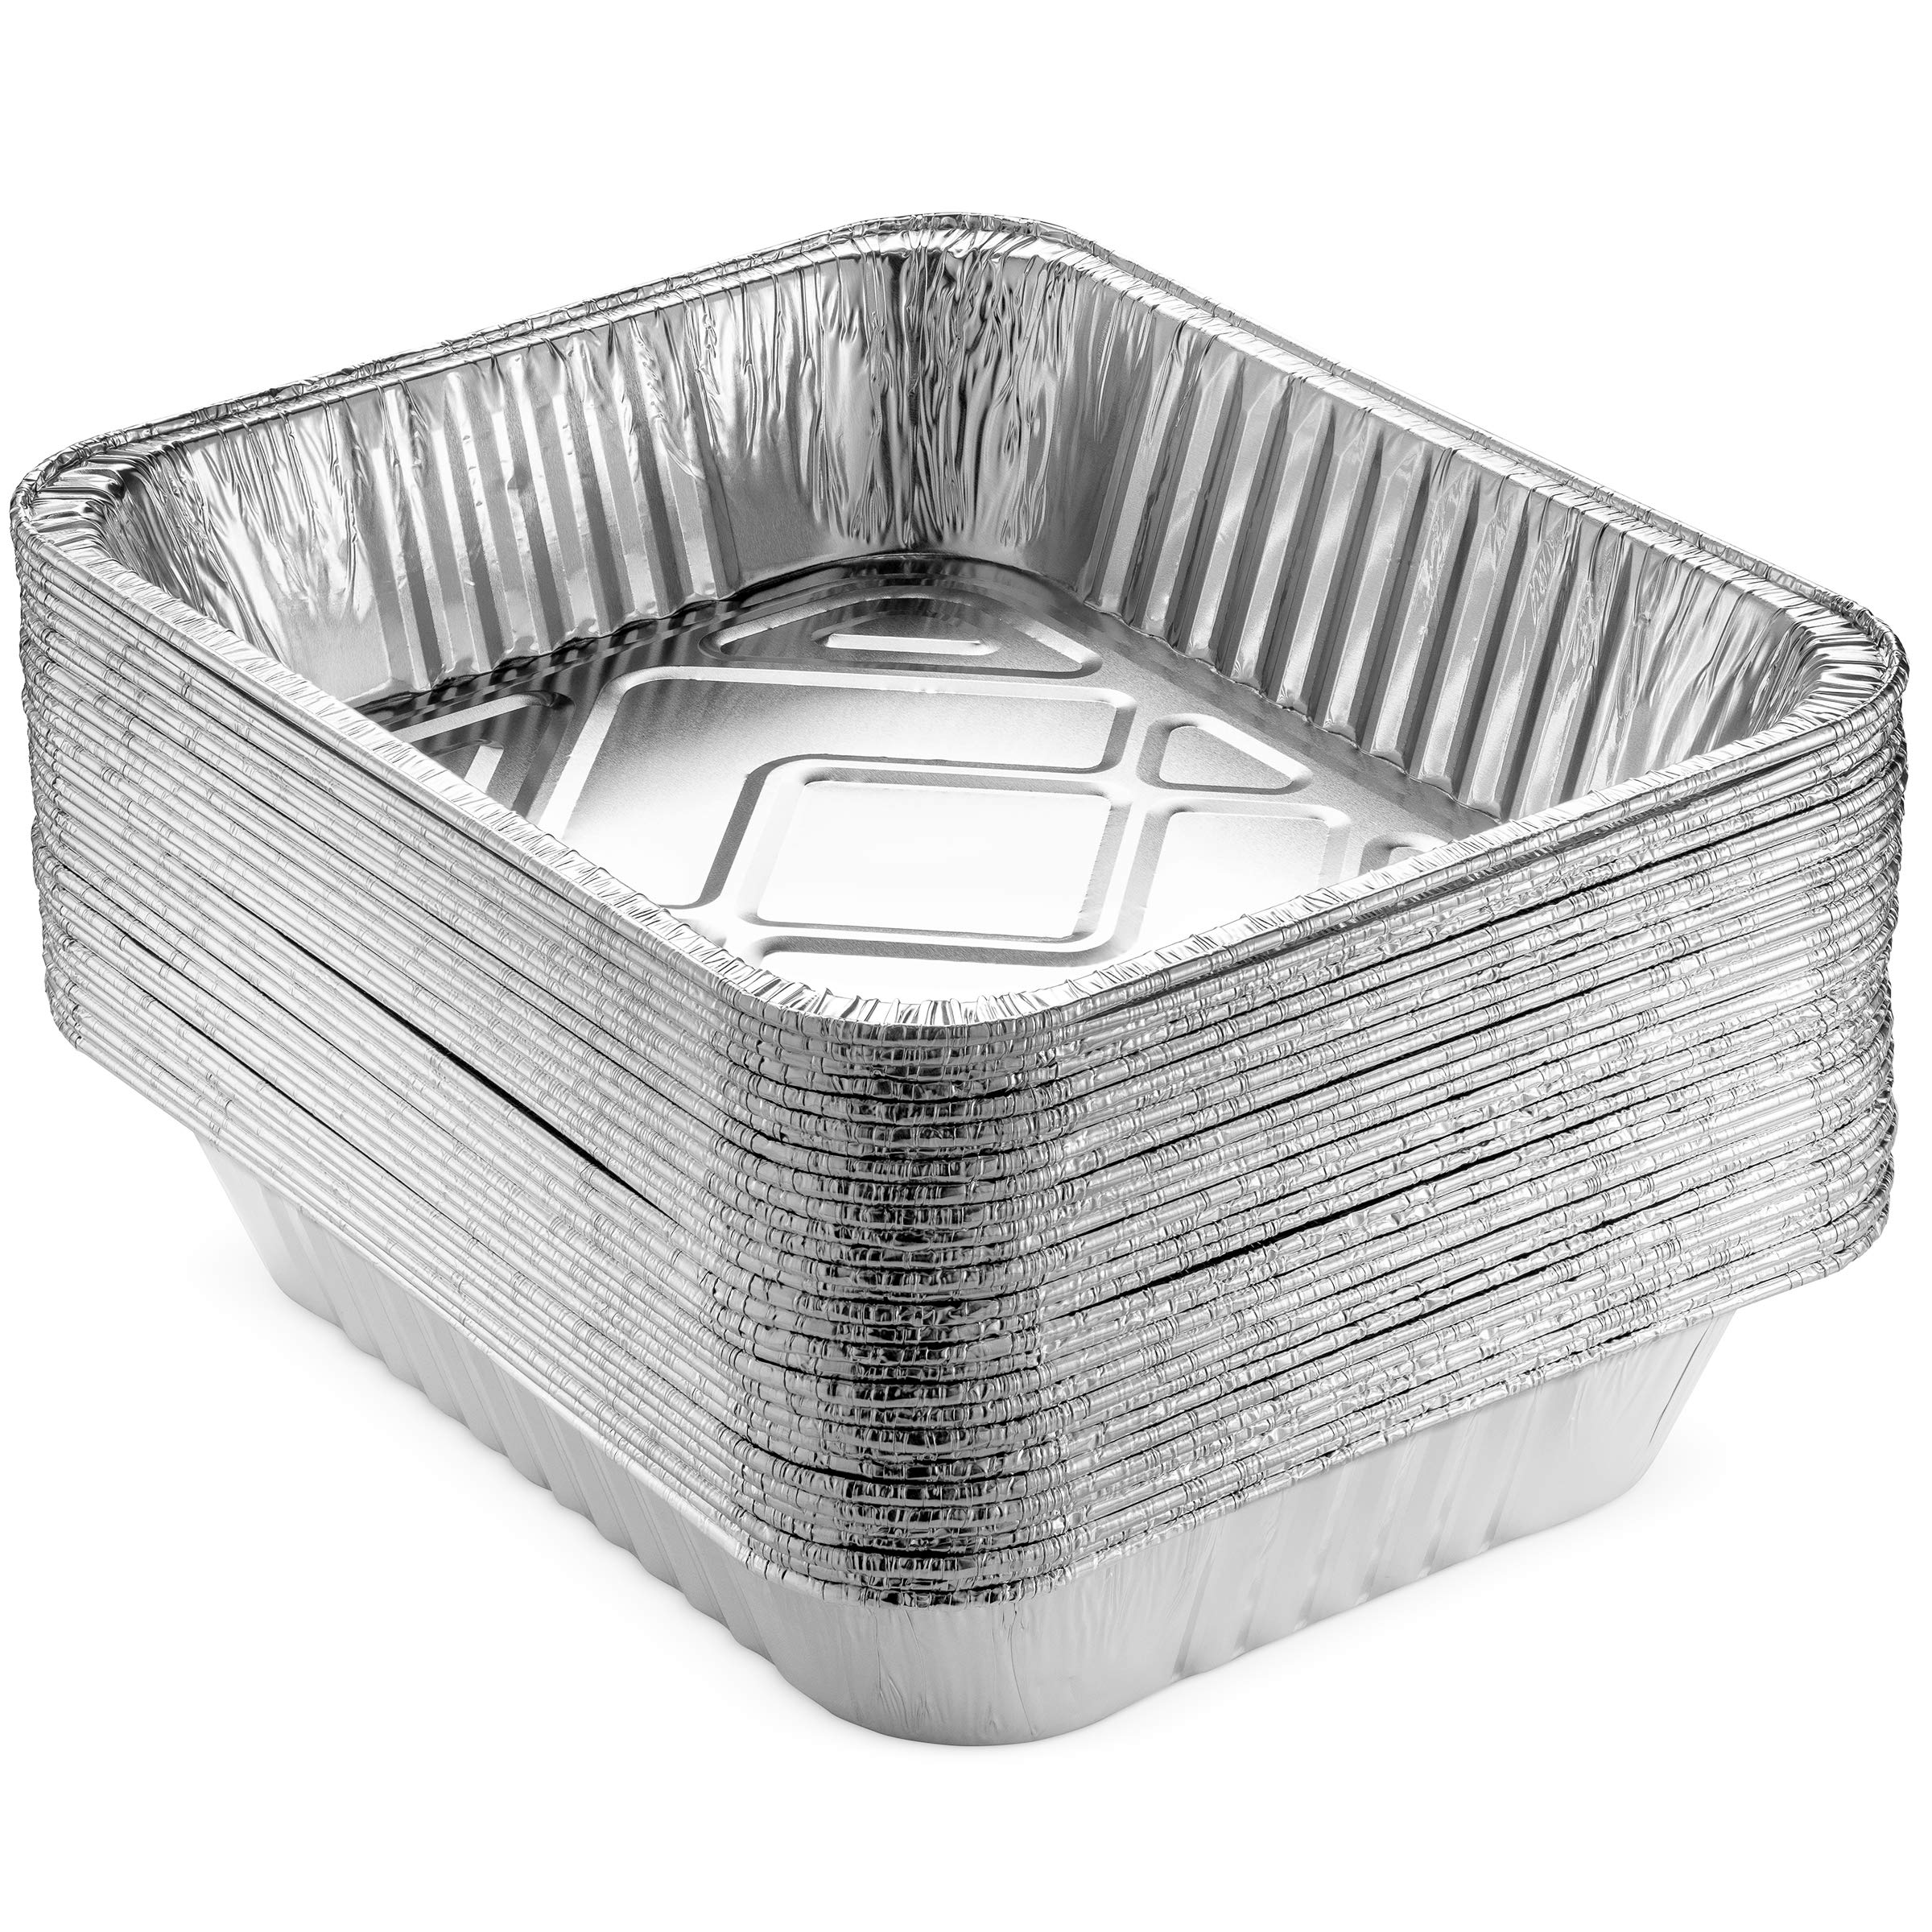 NYHI 9 x 13 '' Aluminum Foil Pans (30 Pack) | Durable Disposable Grill Drip Grease Tray | Half-Size Deep Steam Pan and Oven Buffet Trays | Food Containers for Catering, Baking, Roasting | Made in USA